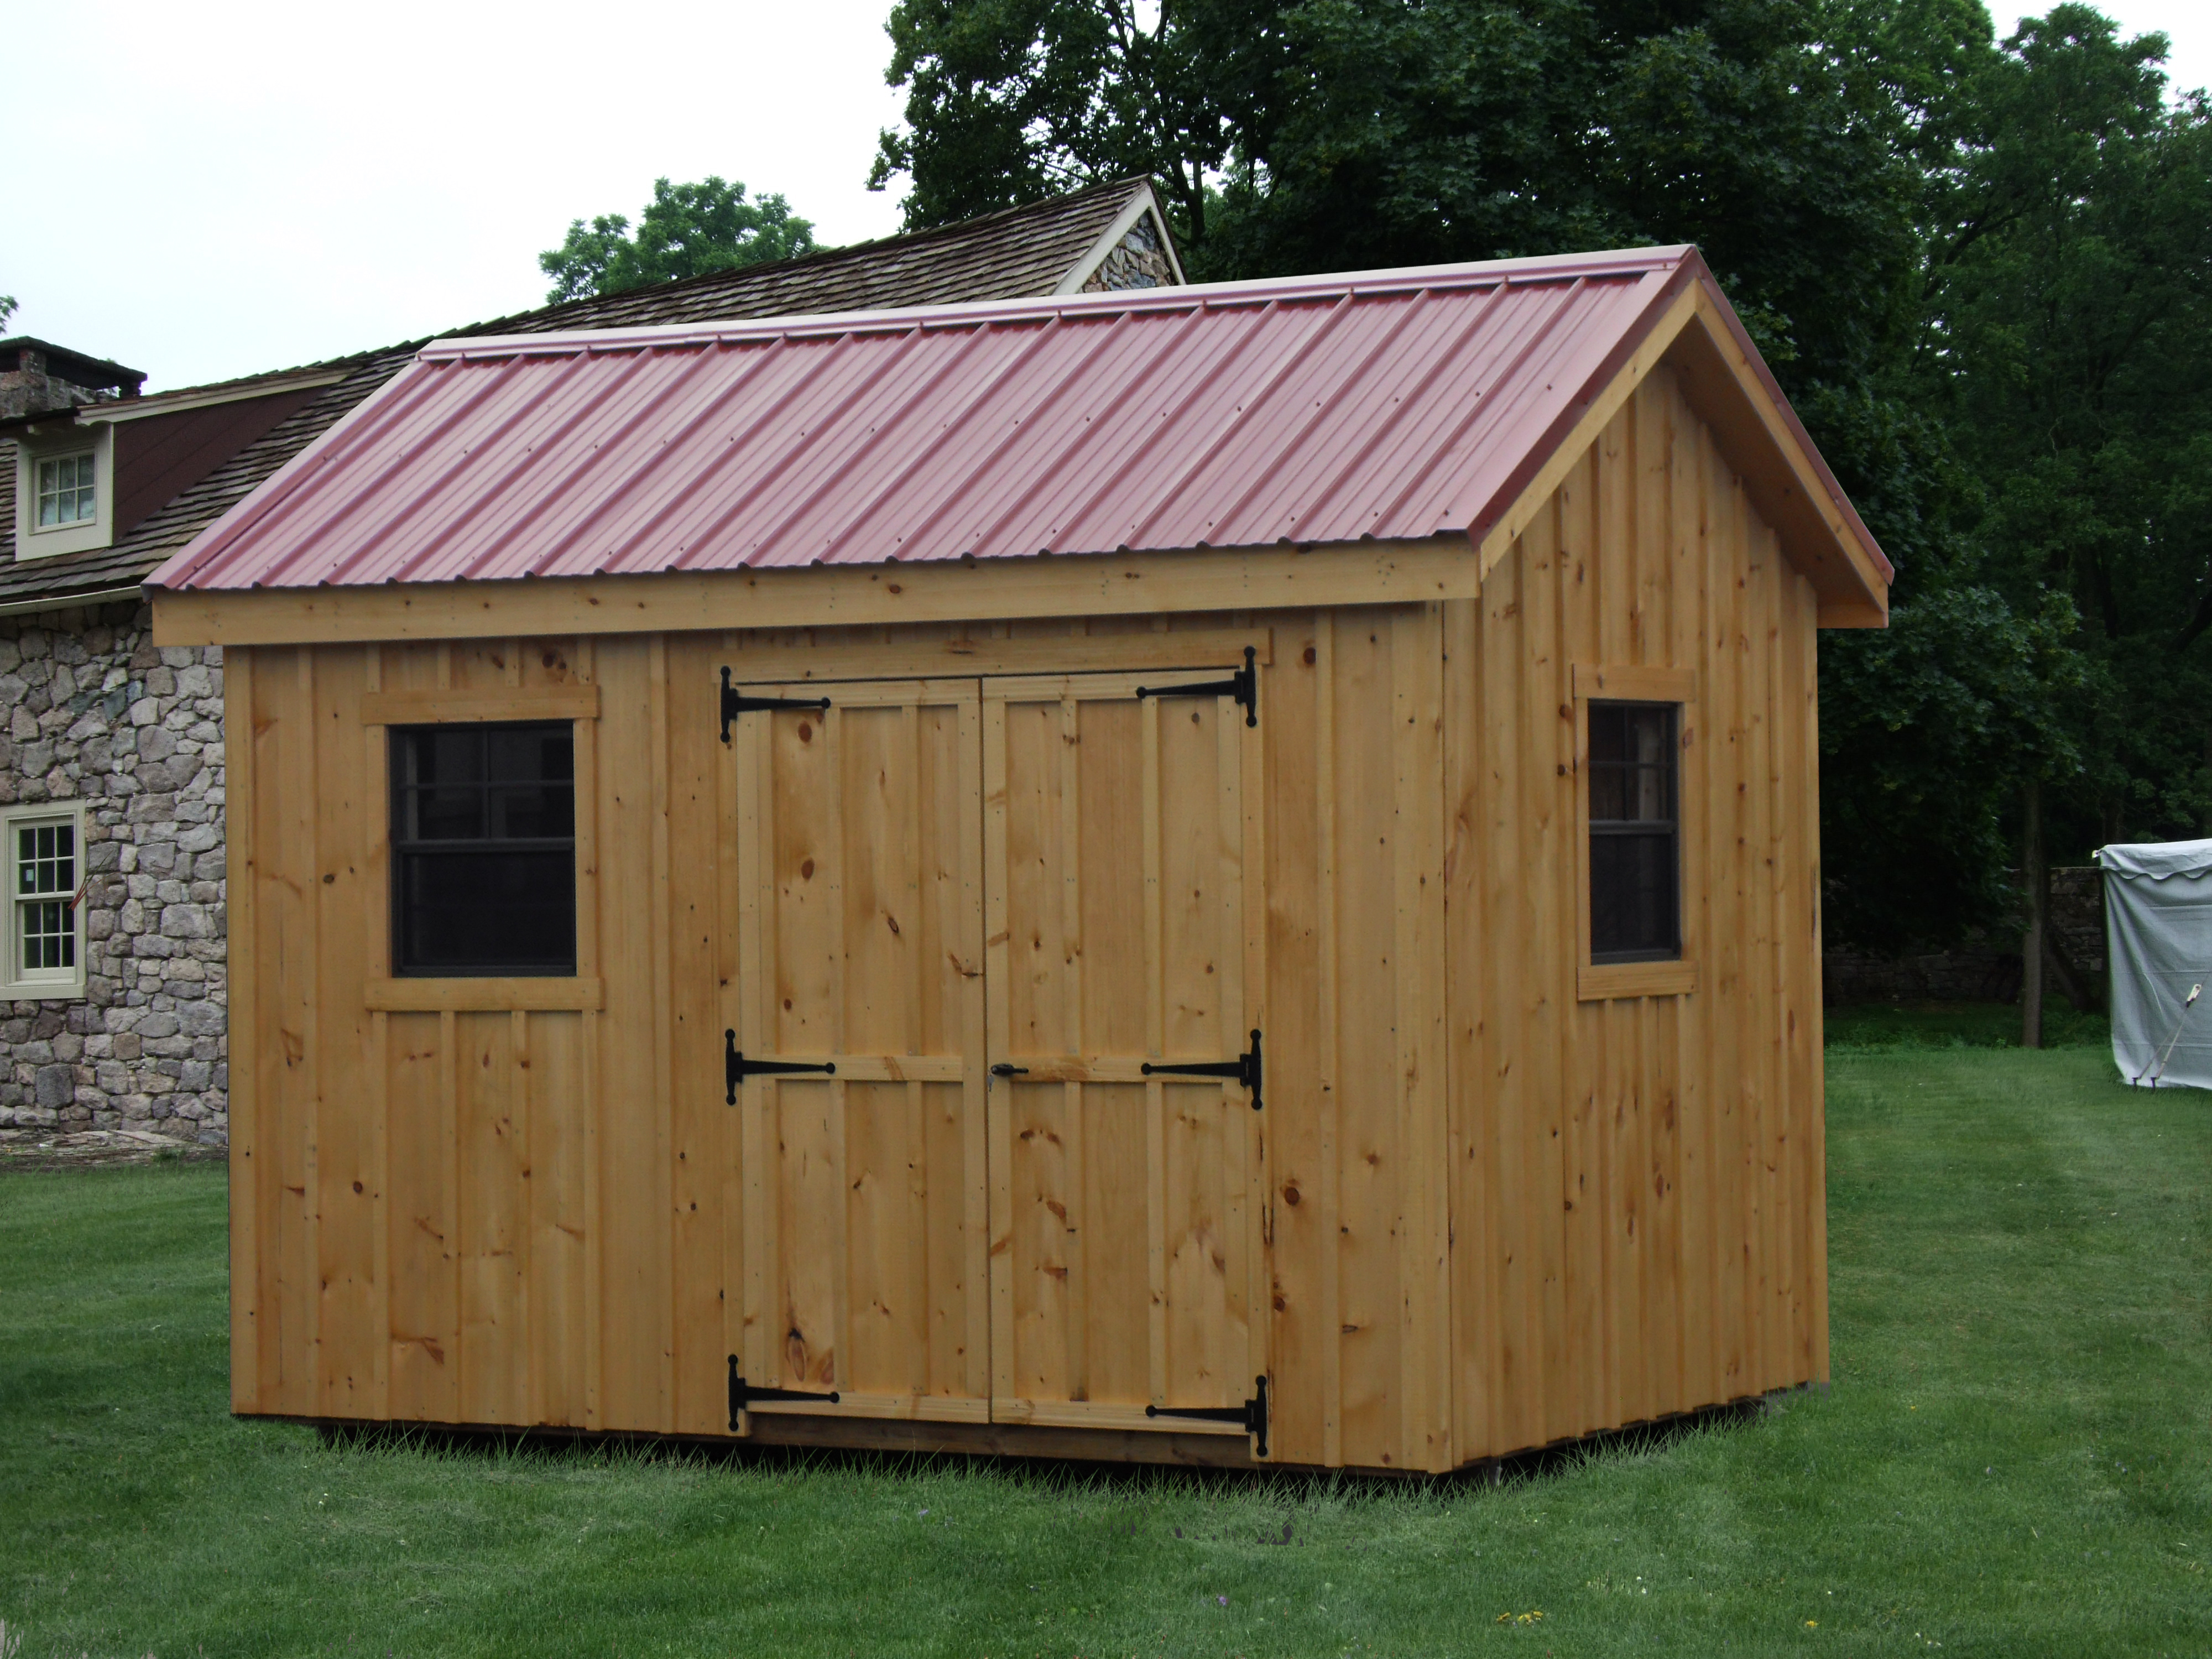 8x12 Board and Batten Workshop with Metal Roof